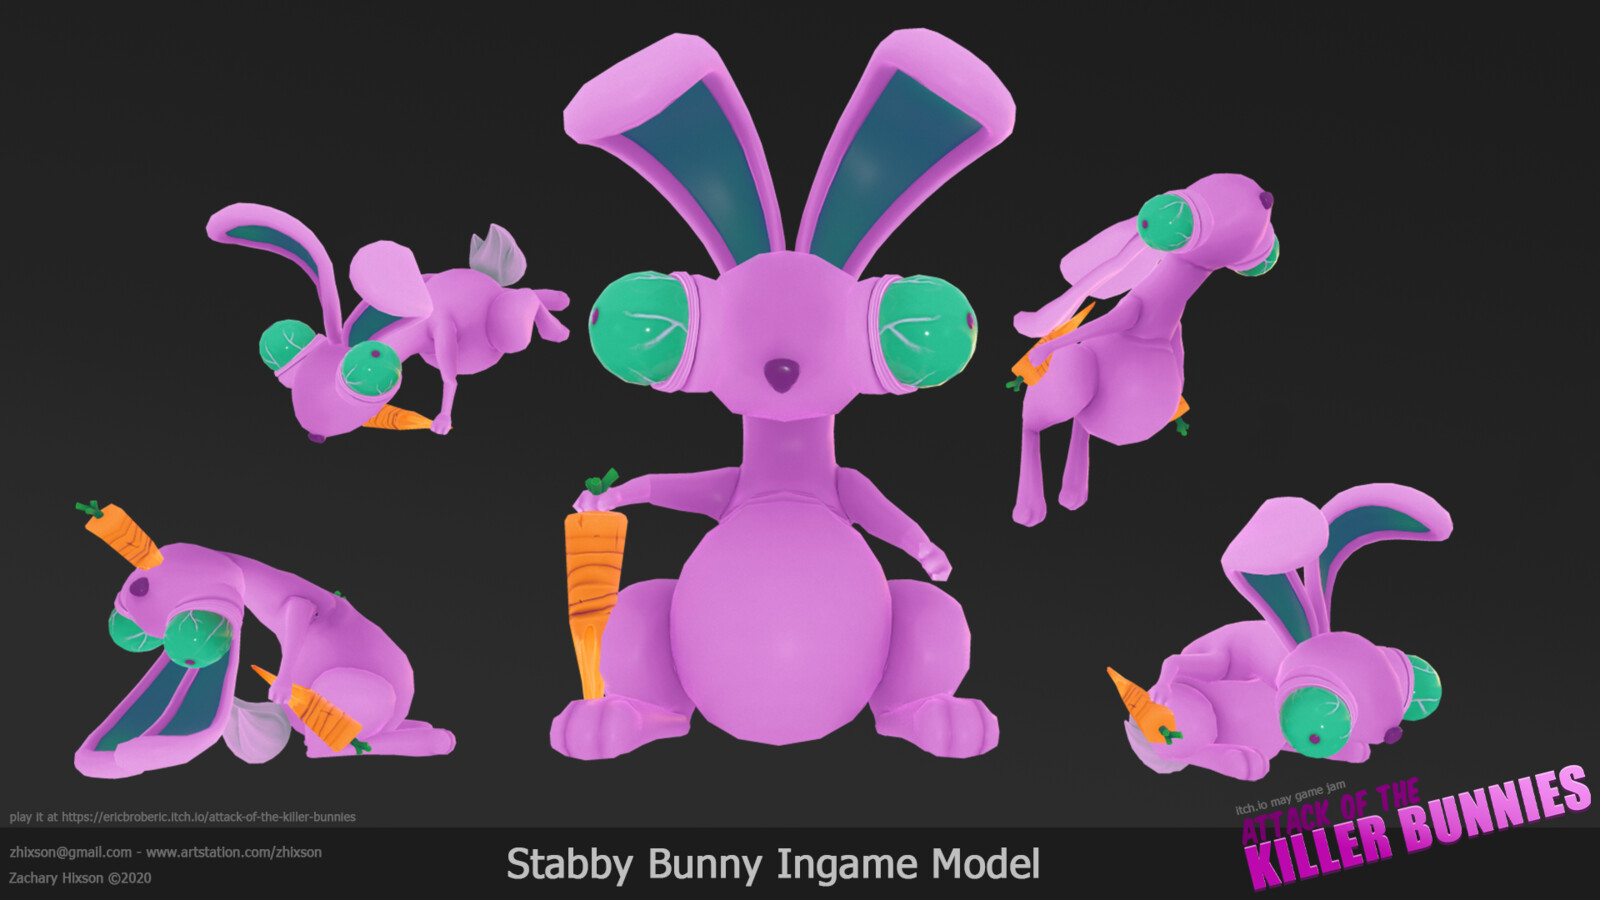 This is the in-game model of the bunny. The bunnies that spawn in game all have randomly sized eyes and ears which can be super creepy and hilarious. Retopo was done in 3D-Coat,  textured in photoshop, and rigged and animated in 3DS Max.